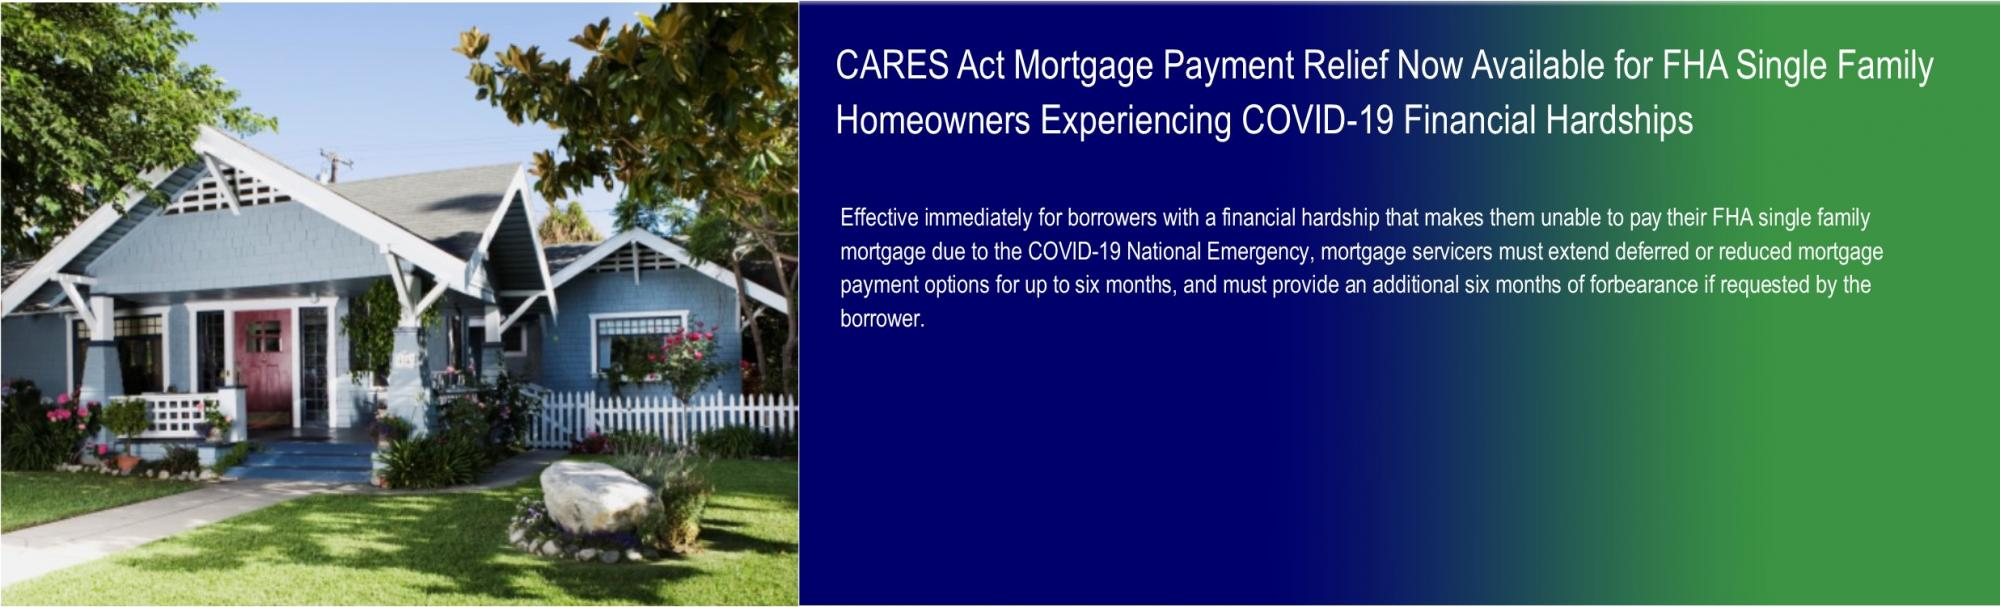 CARES Act Mortgage Payment Relief Now Available for FHA Single Family Homeowners Experiencing COVID-19 Financial Hardships. HUD Photo